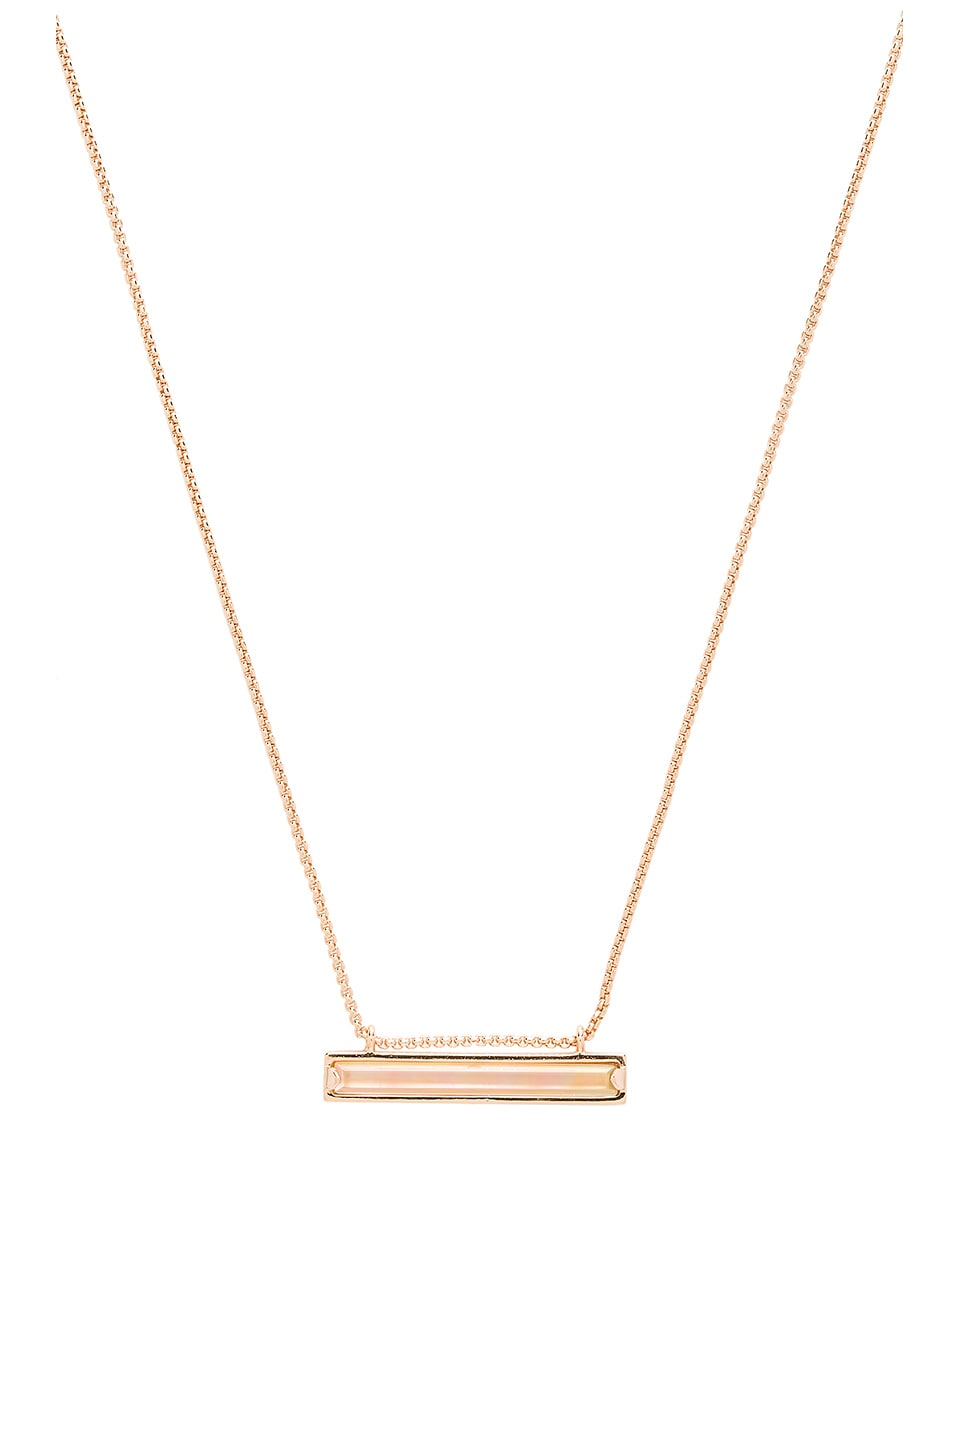 Kendra Scott Eleanor Necklace in Rose Gold & Brown Mother Of Pearl